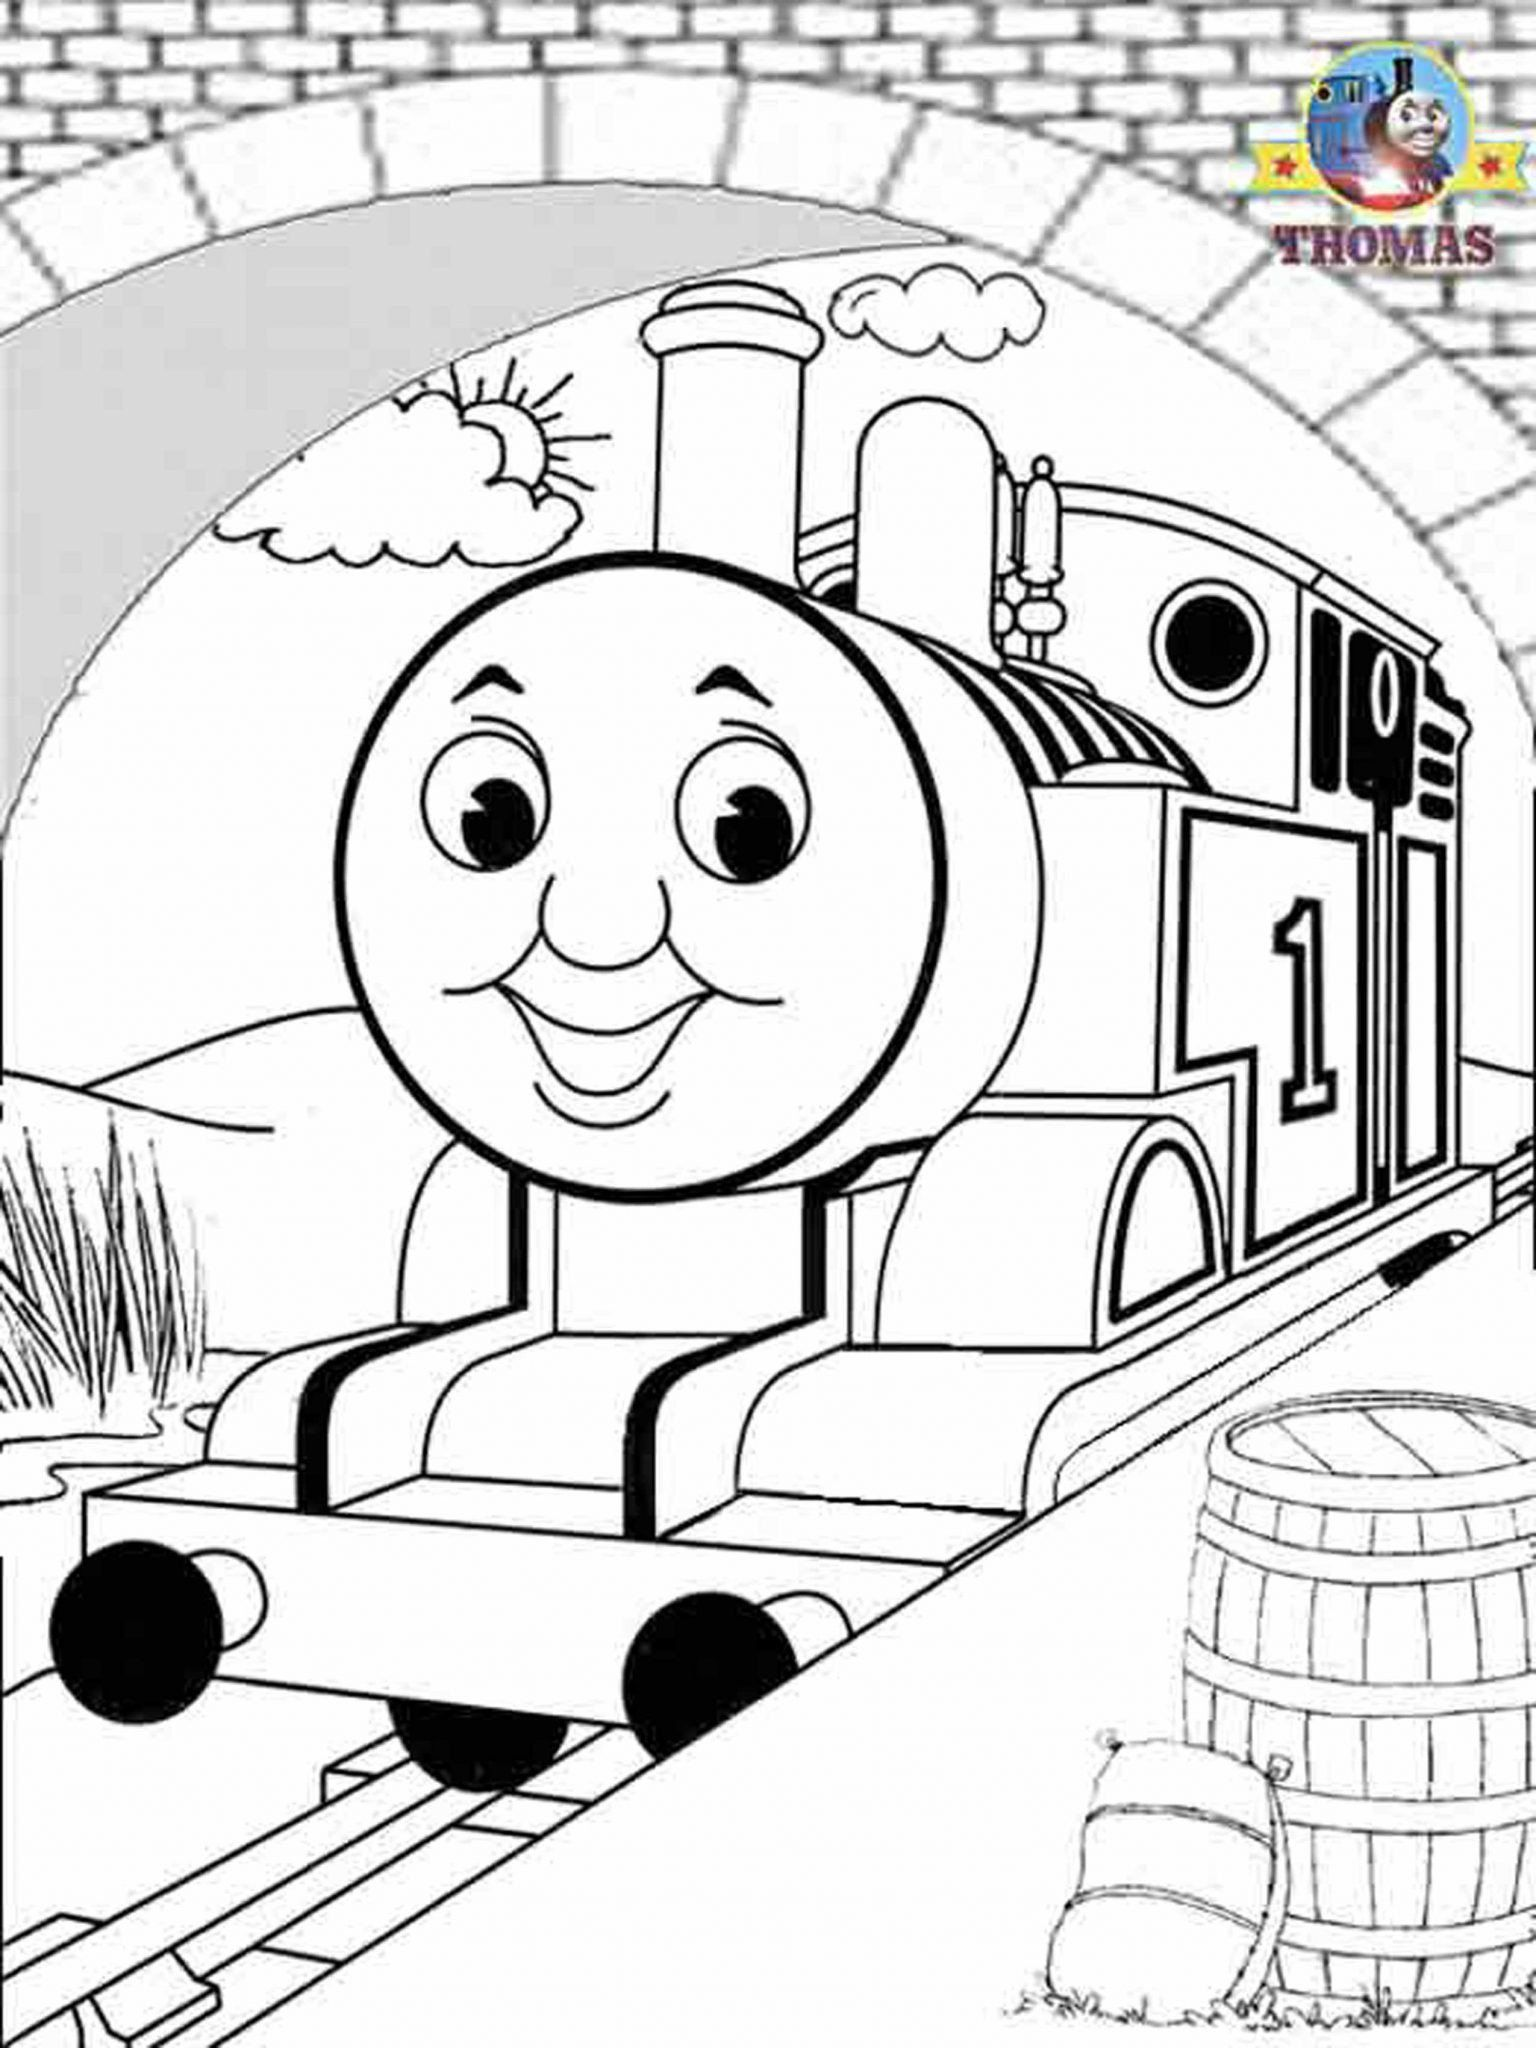 Coloring Pages For Boys Online Coloring Pages For Boys Thomas The Train In 2020 Unicorn Coloring Pages Kids Coloring Books Coloring Pages For Boys